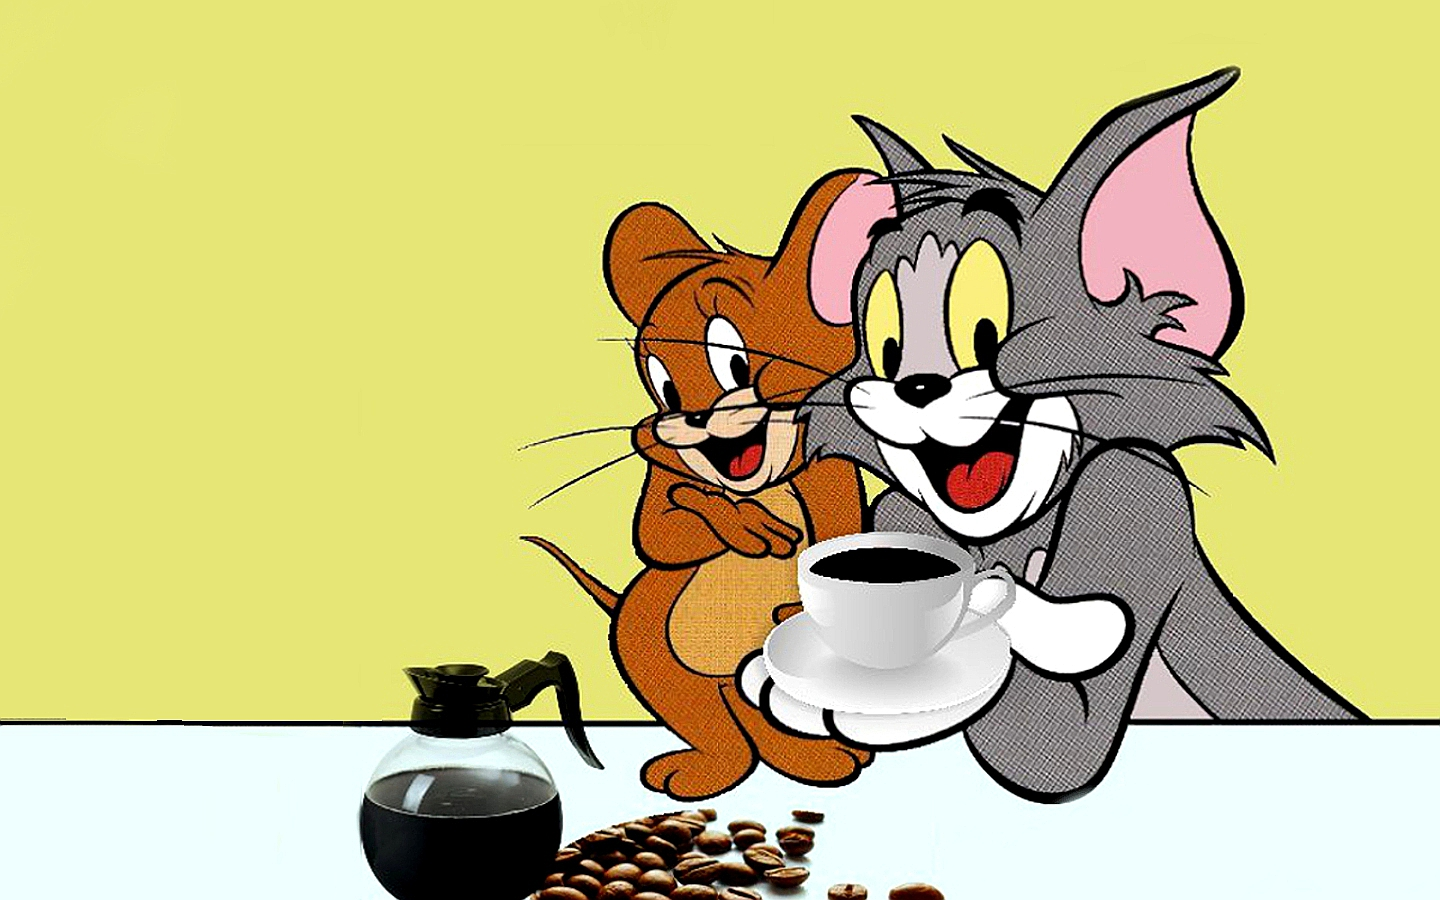 15 Life Lessons We Learned From The Tom And Jerry Show